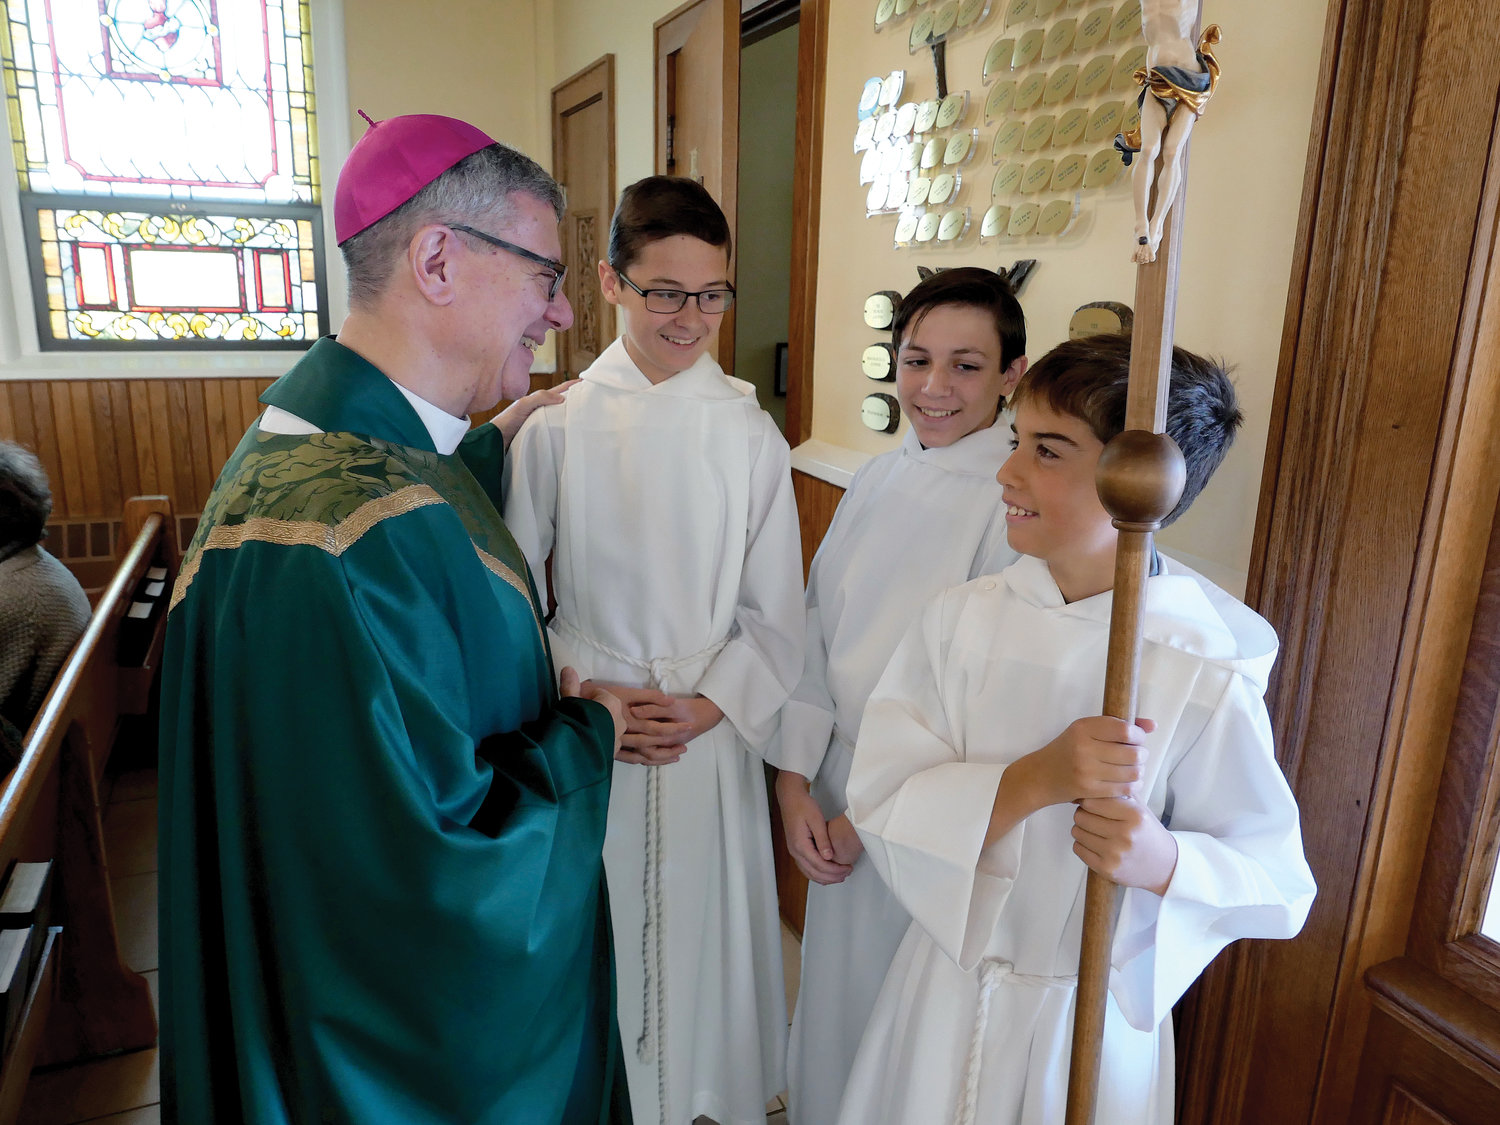 Bishop-elect Gerardo Colacicco shares a smile with altar servers, from left: Andrew Clegg, Liam Canevari and Jacob Zmudosky in the back of St. Joseph-Immaculate Conception Church in Millbrook Nov. 3.